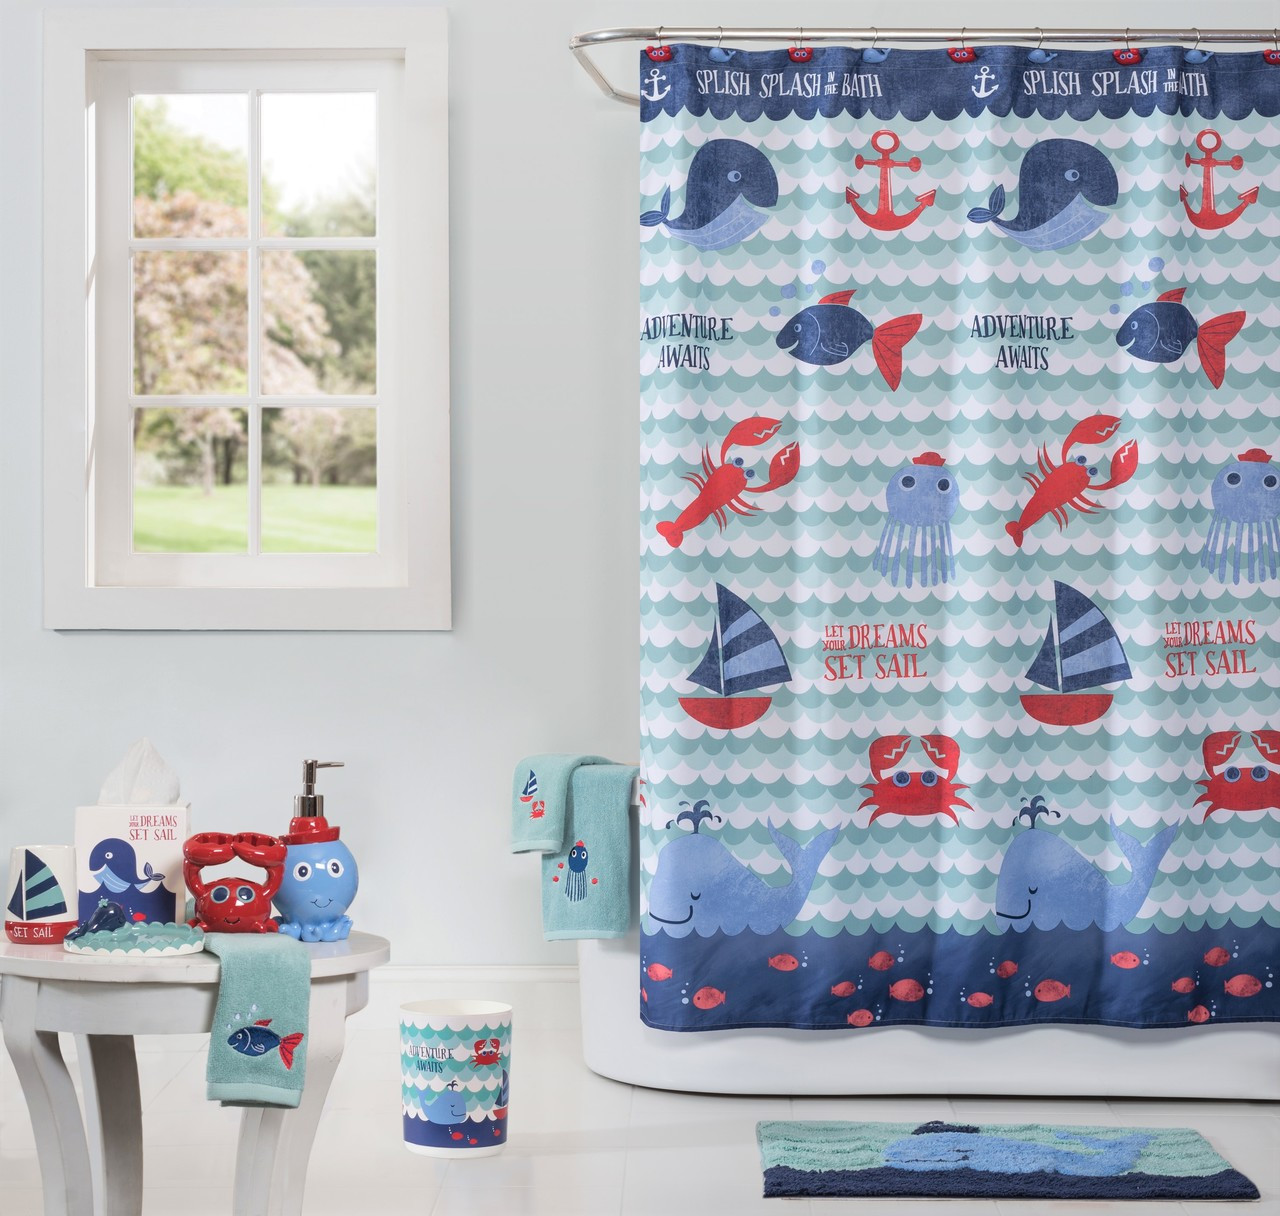 Set Sail Shower Curtain Bathroom Accessories From Saturday Knight